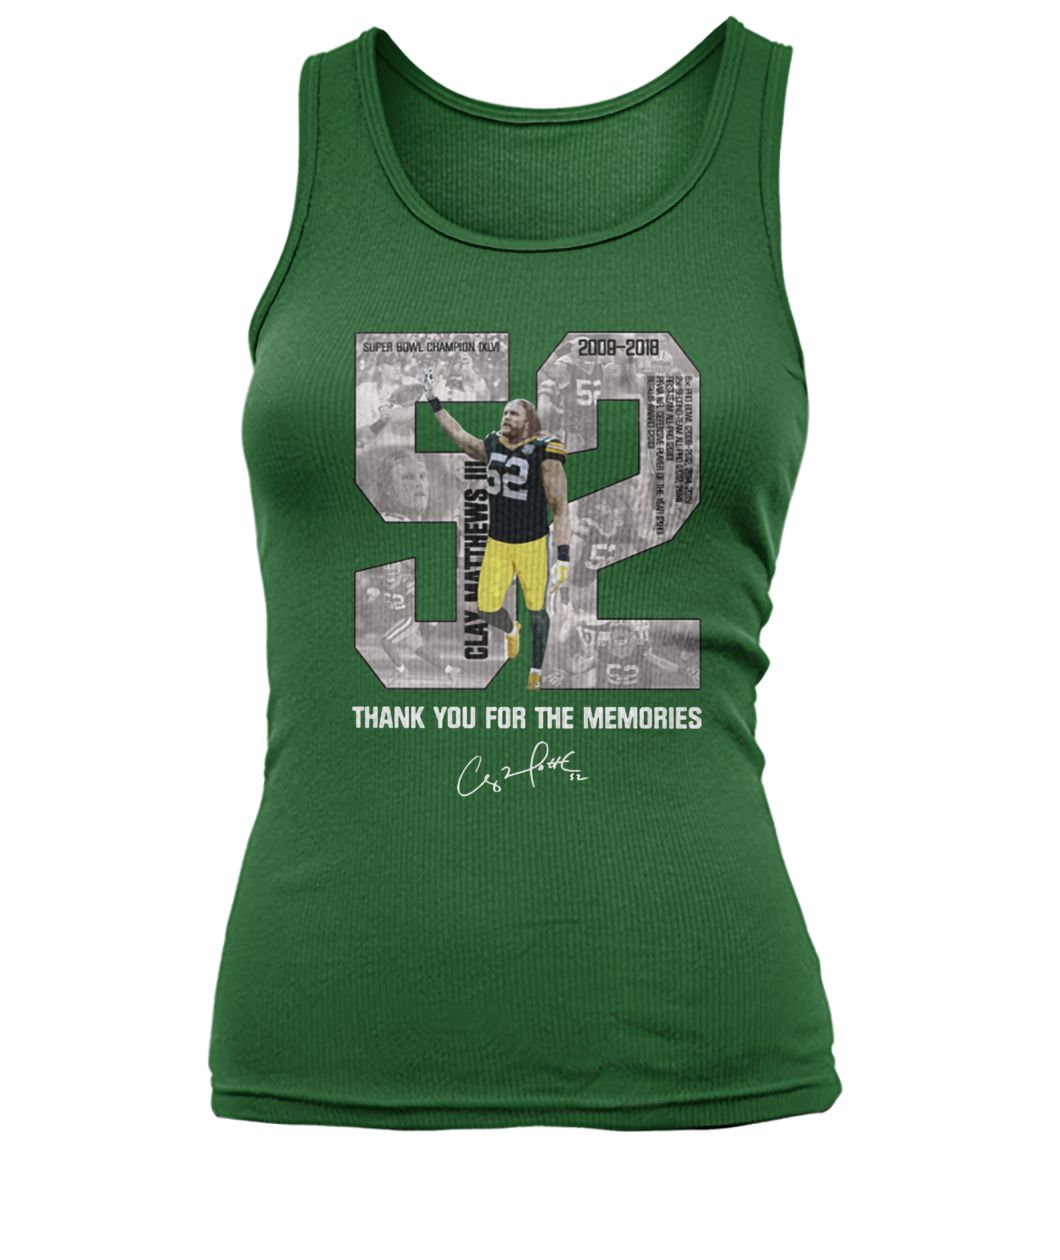 Clay matthews 52 thank you for the memories women's tank top